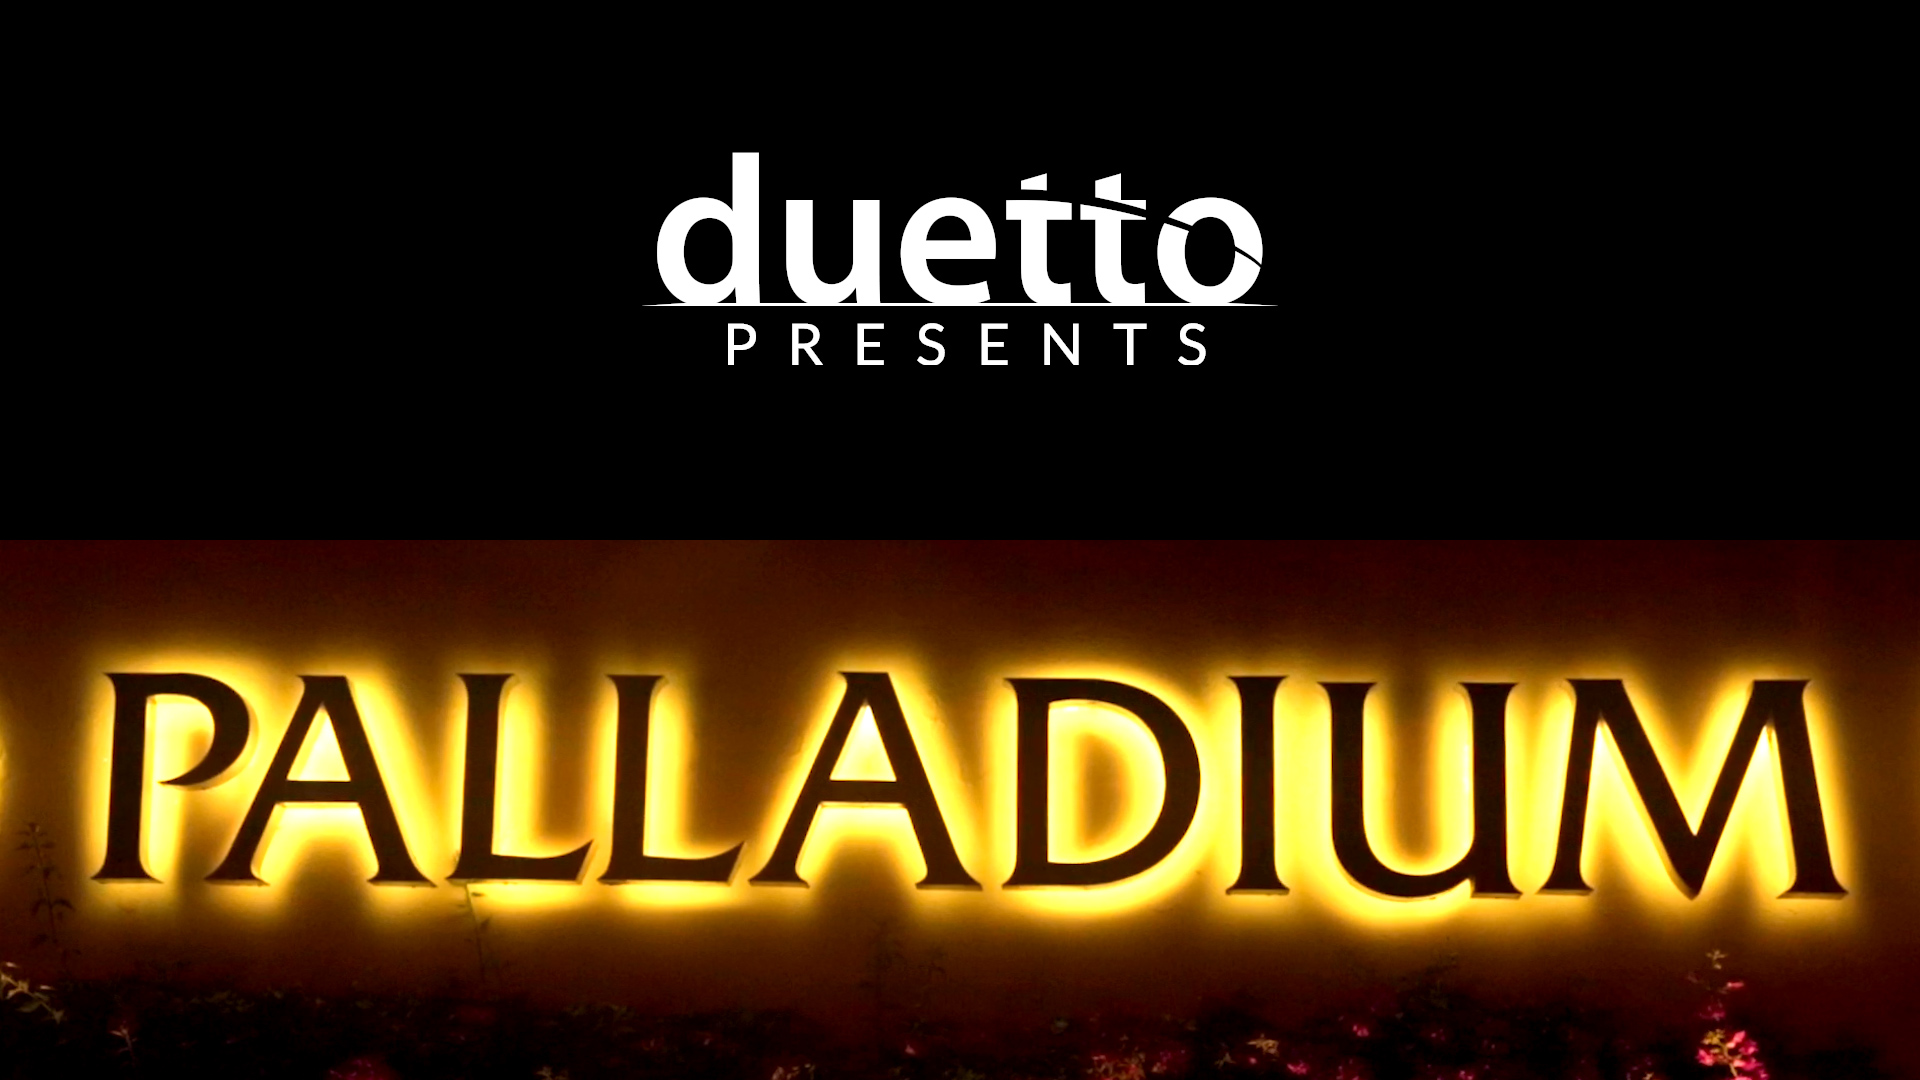 Duetto Presents: Palladium Hotels & Resorts